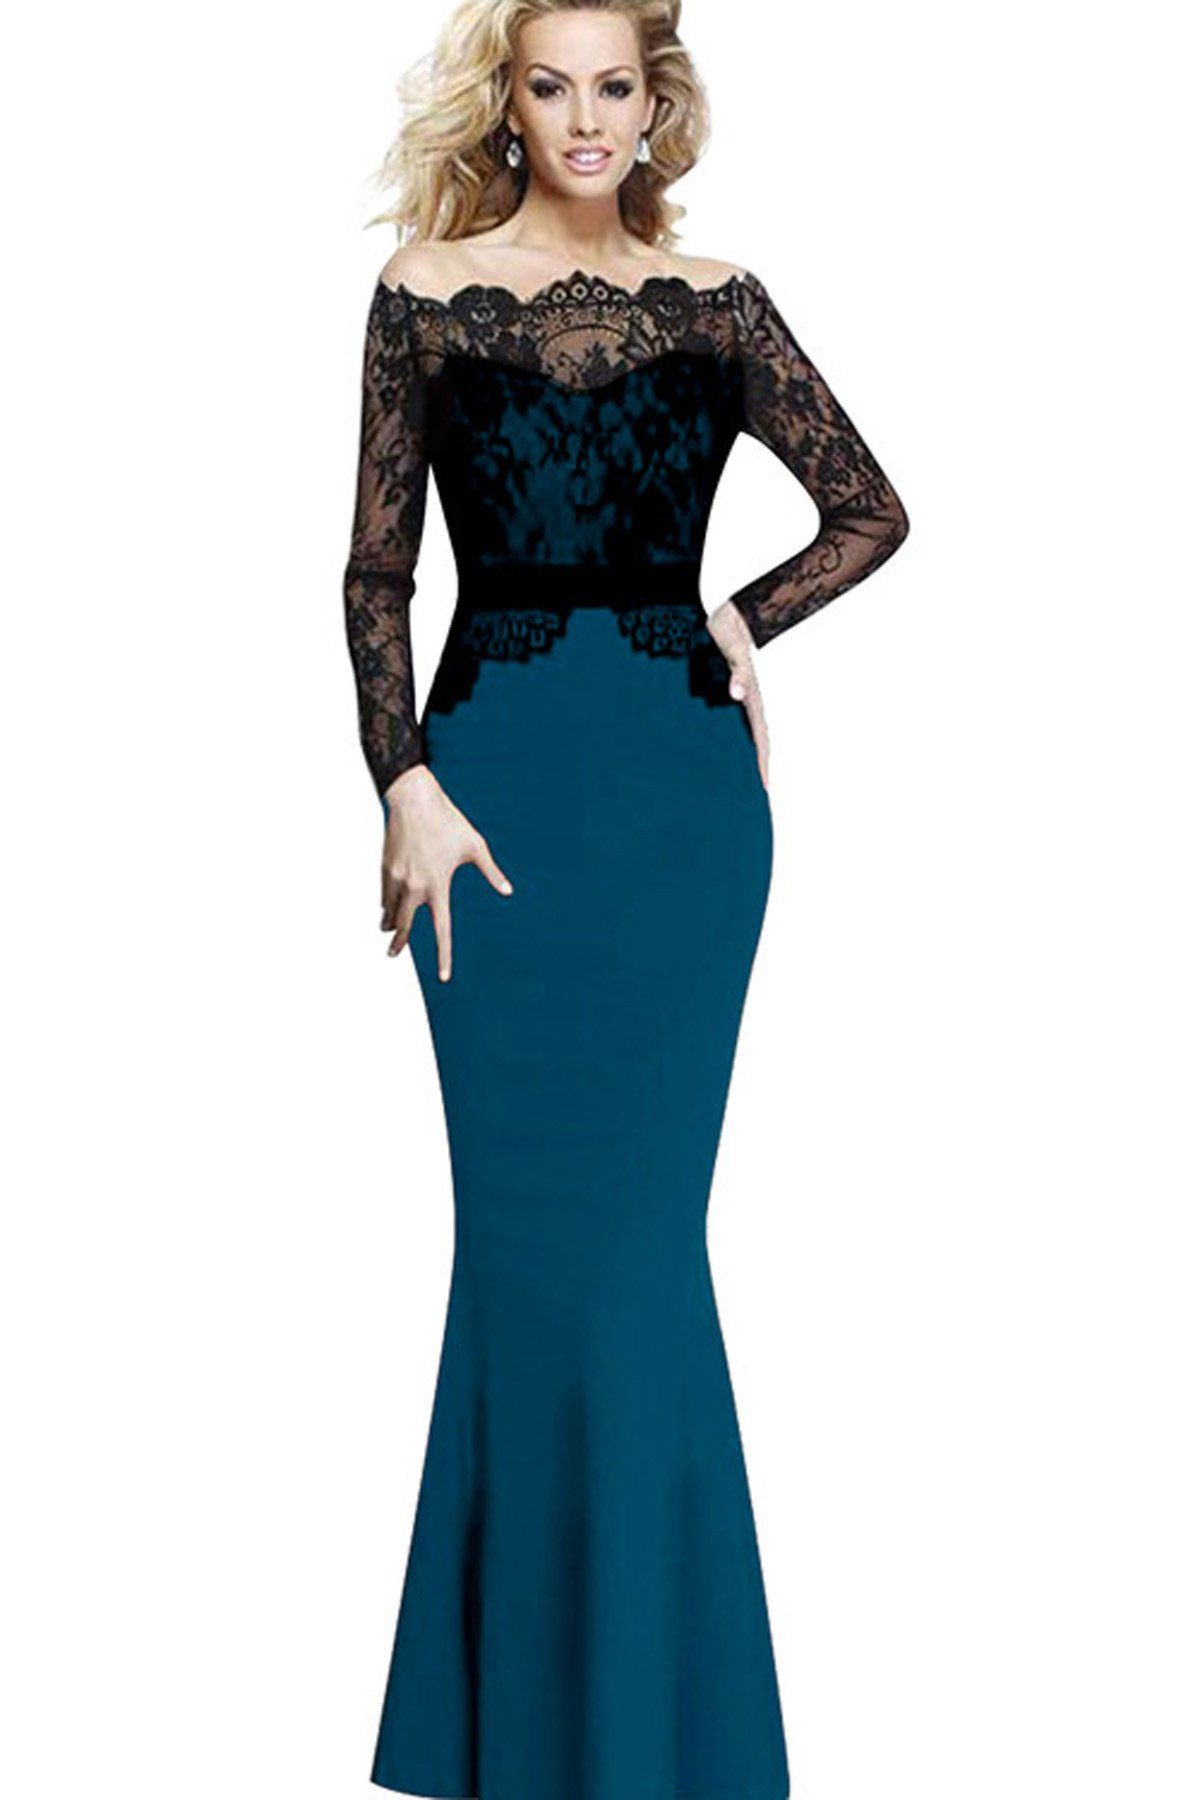 Splicing mermaid lace long party dress in dresses pinterest